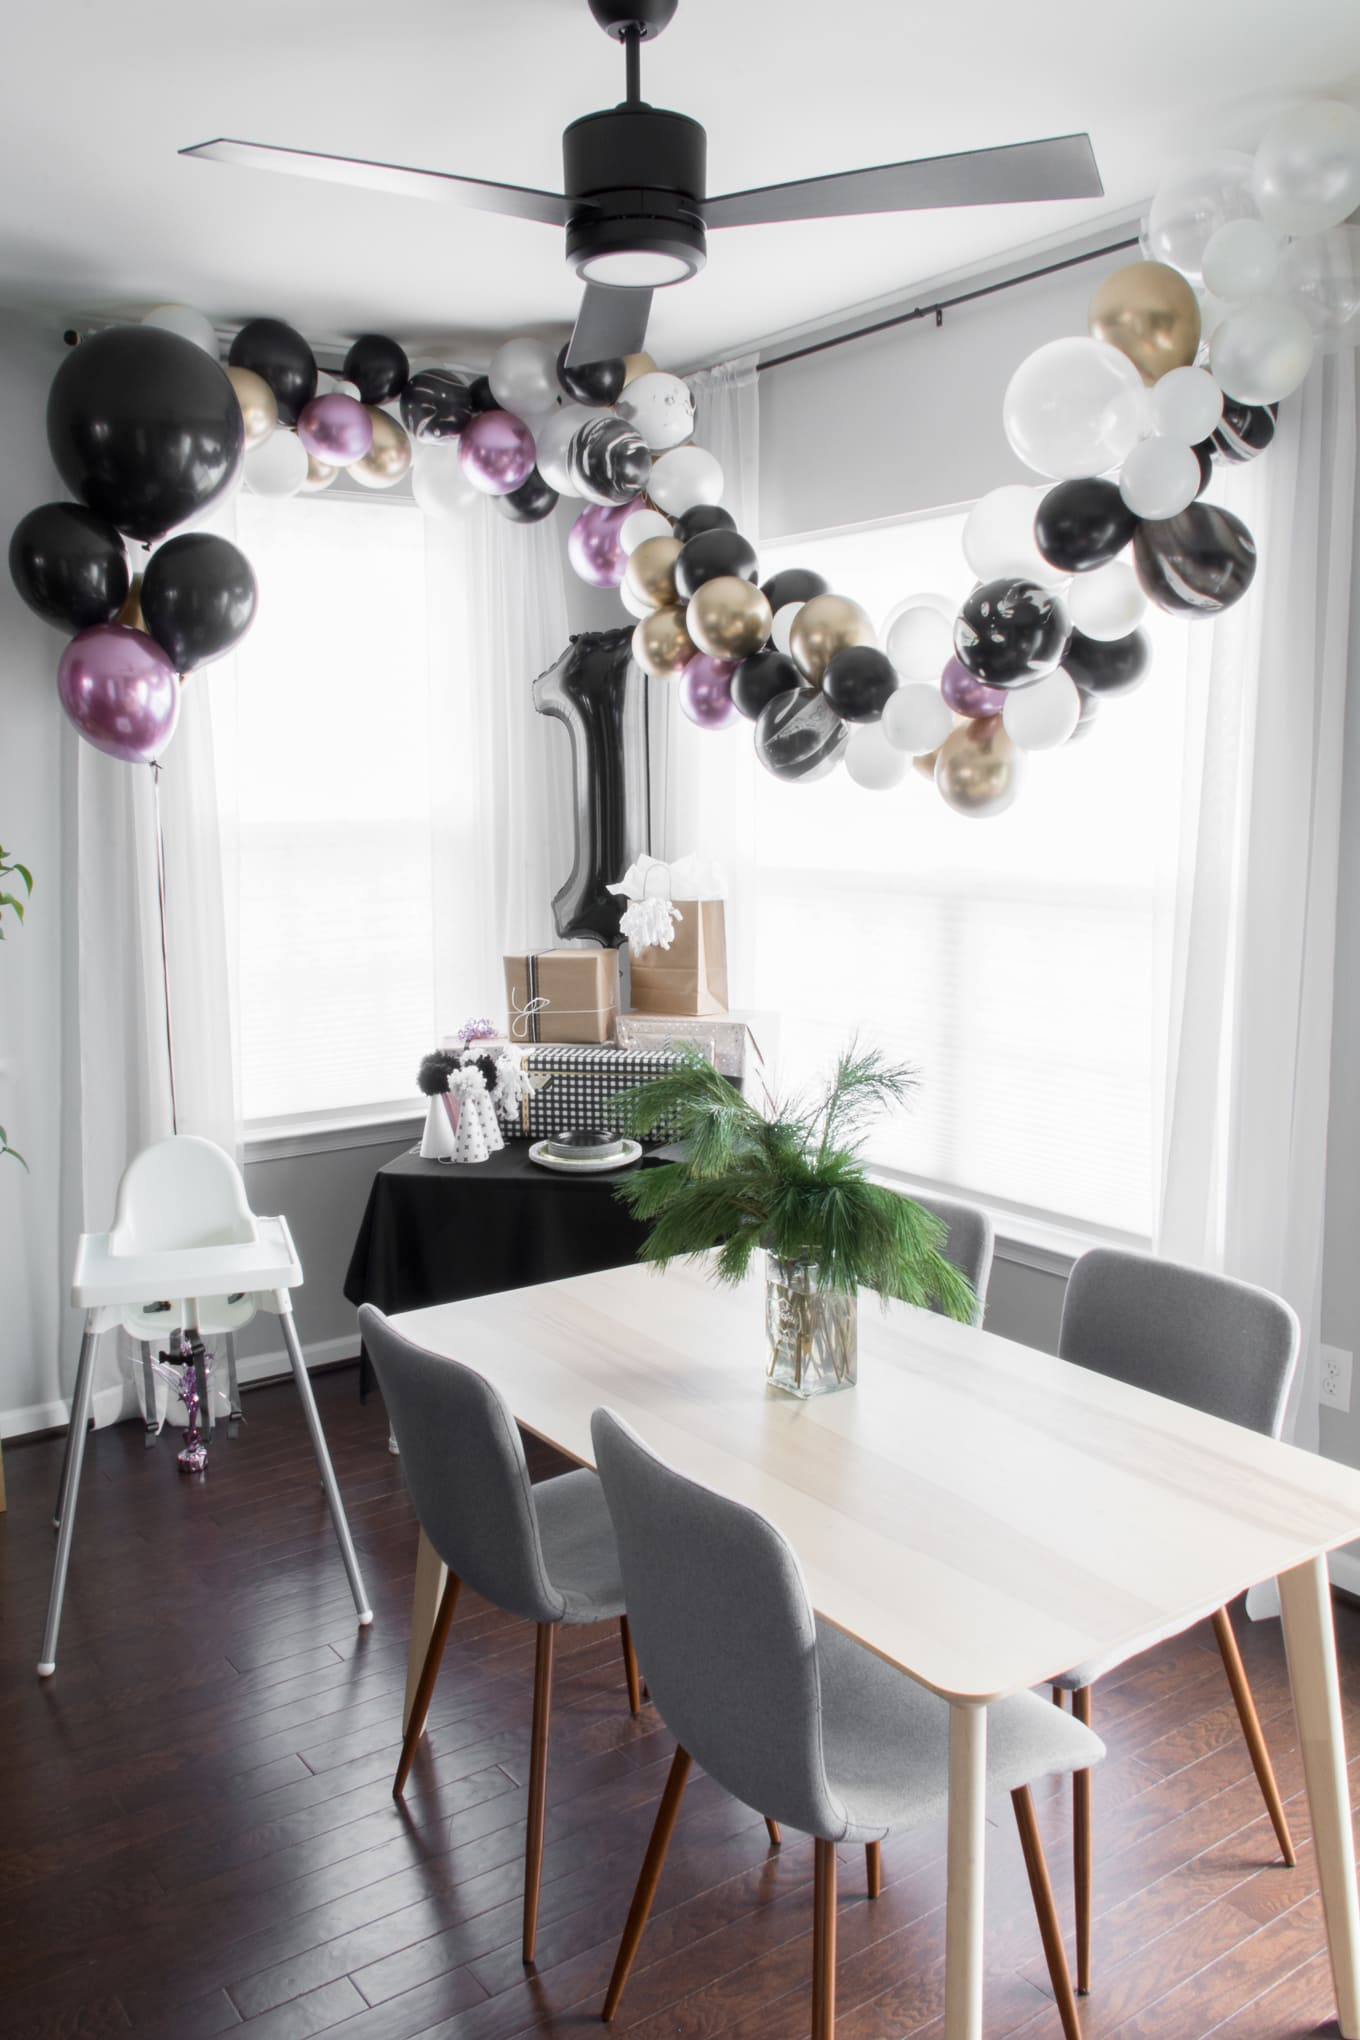 Ramona's modern handmade first birthday party. Looking for modern birthday party decor ideas? #modernfirstbirthday #firstbirthdaydecor #chicfirstbirthday #blackandwhiteballoons #goldballons #firstbirthday #balloongarland #DIYpartyhats #diycaketopper #monochromebirthday